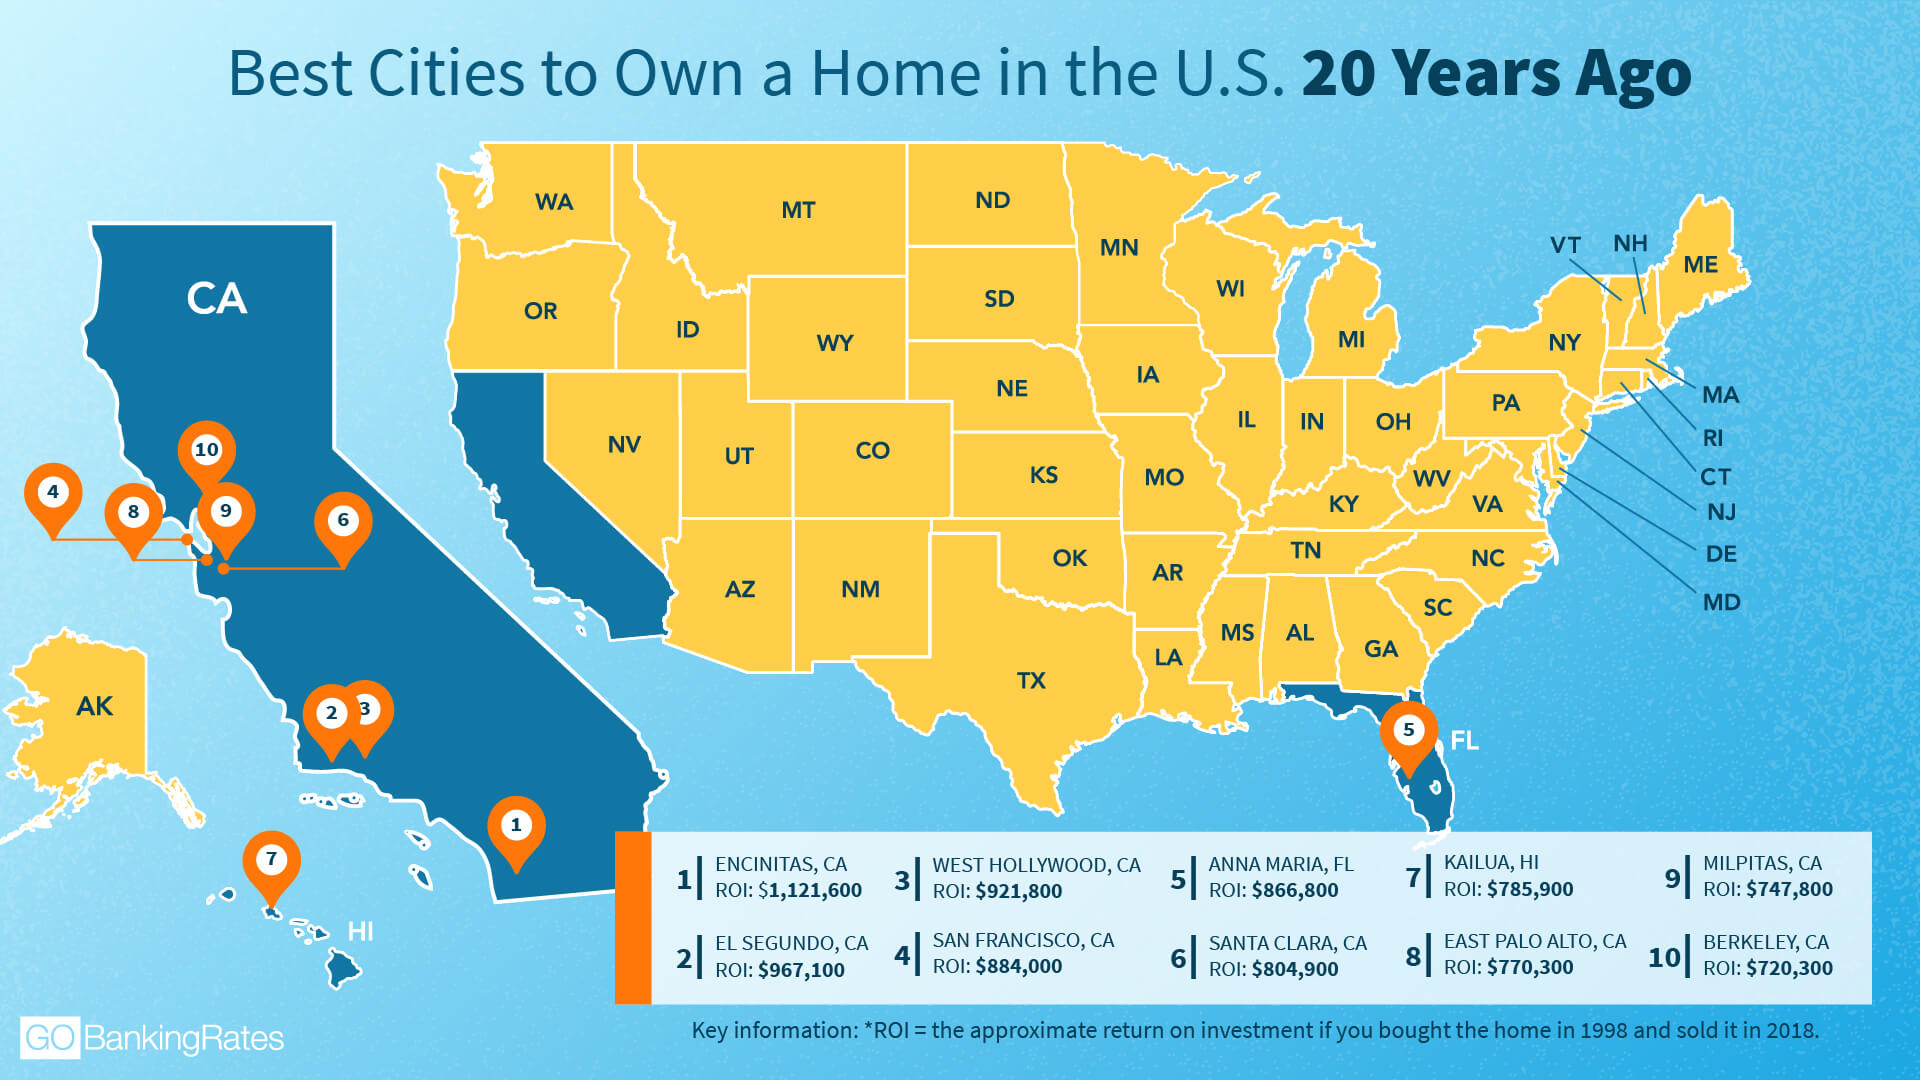 Best Cities to Own a Home in the U.S. 20 Years Ago